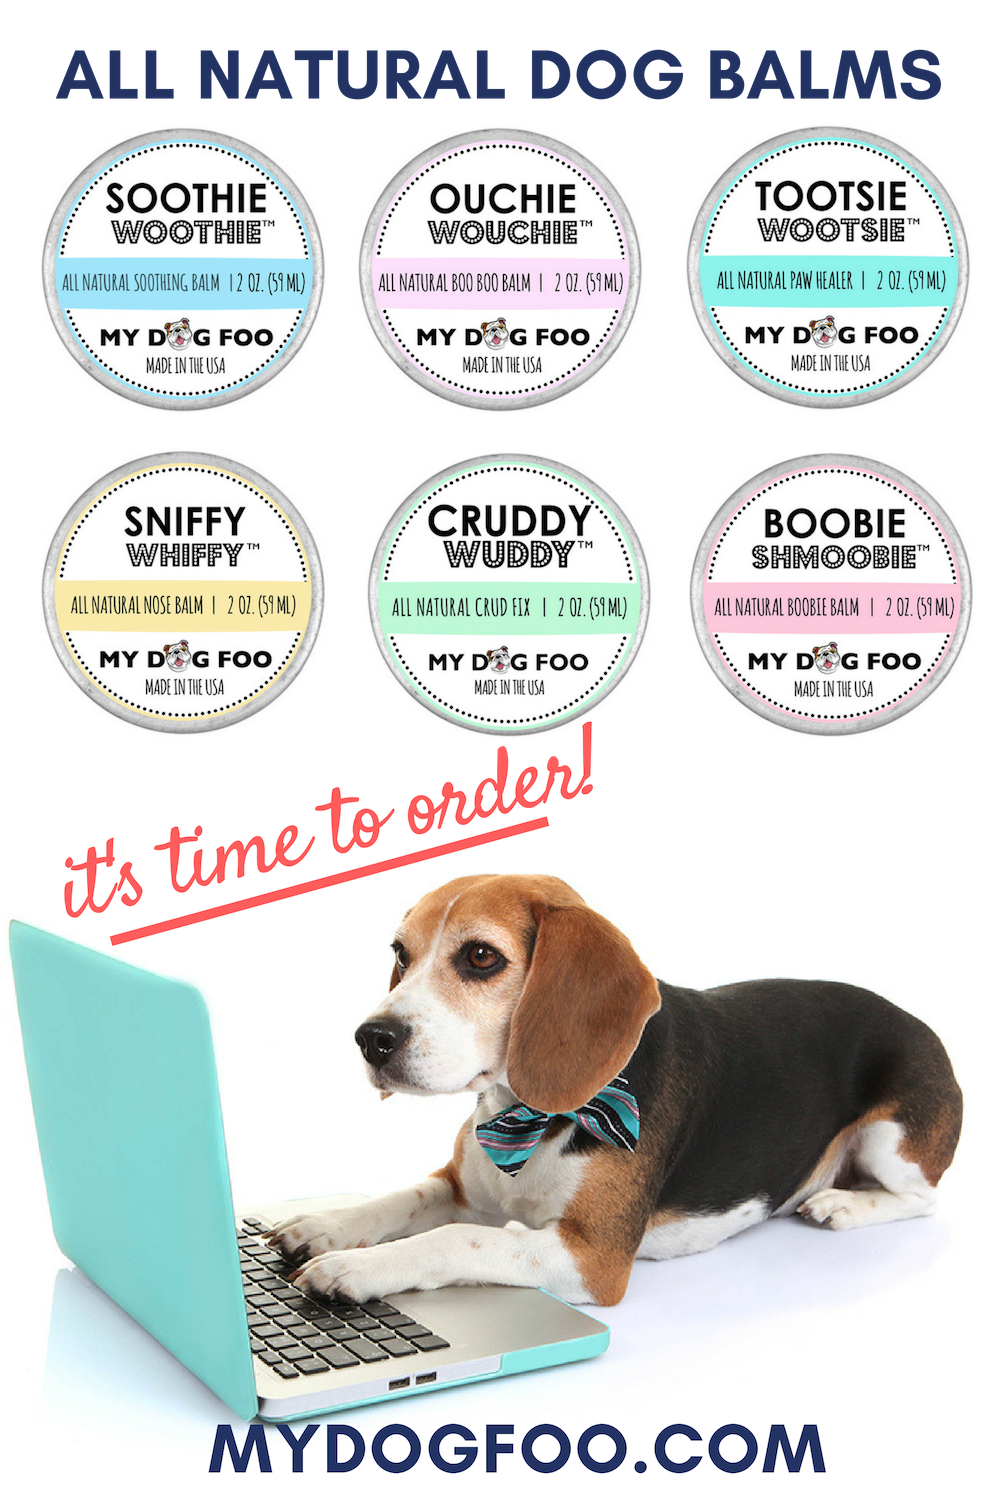 100 All Natural Vegan Cruelty Free Skin Care Products For Dogs No Chemicals Just All Natural Tail Wagging Goo Dog Balm Dog Grooming Tips Dog Health Tips